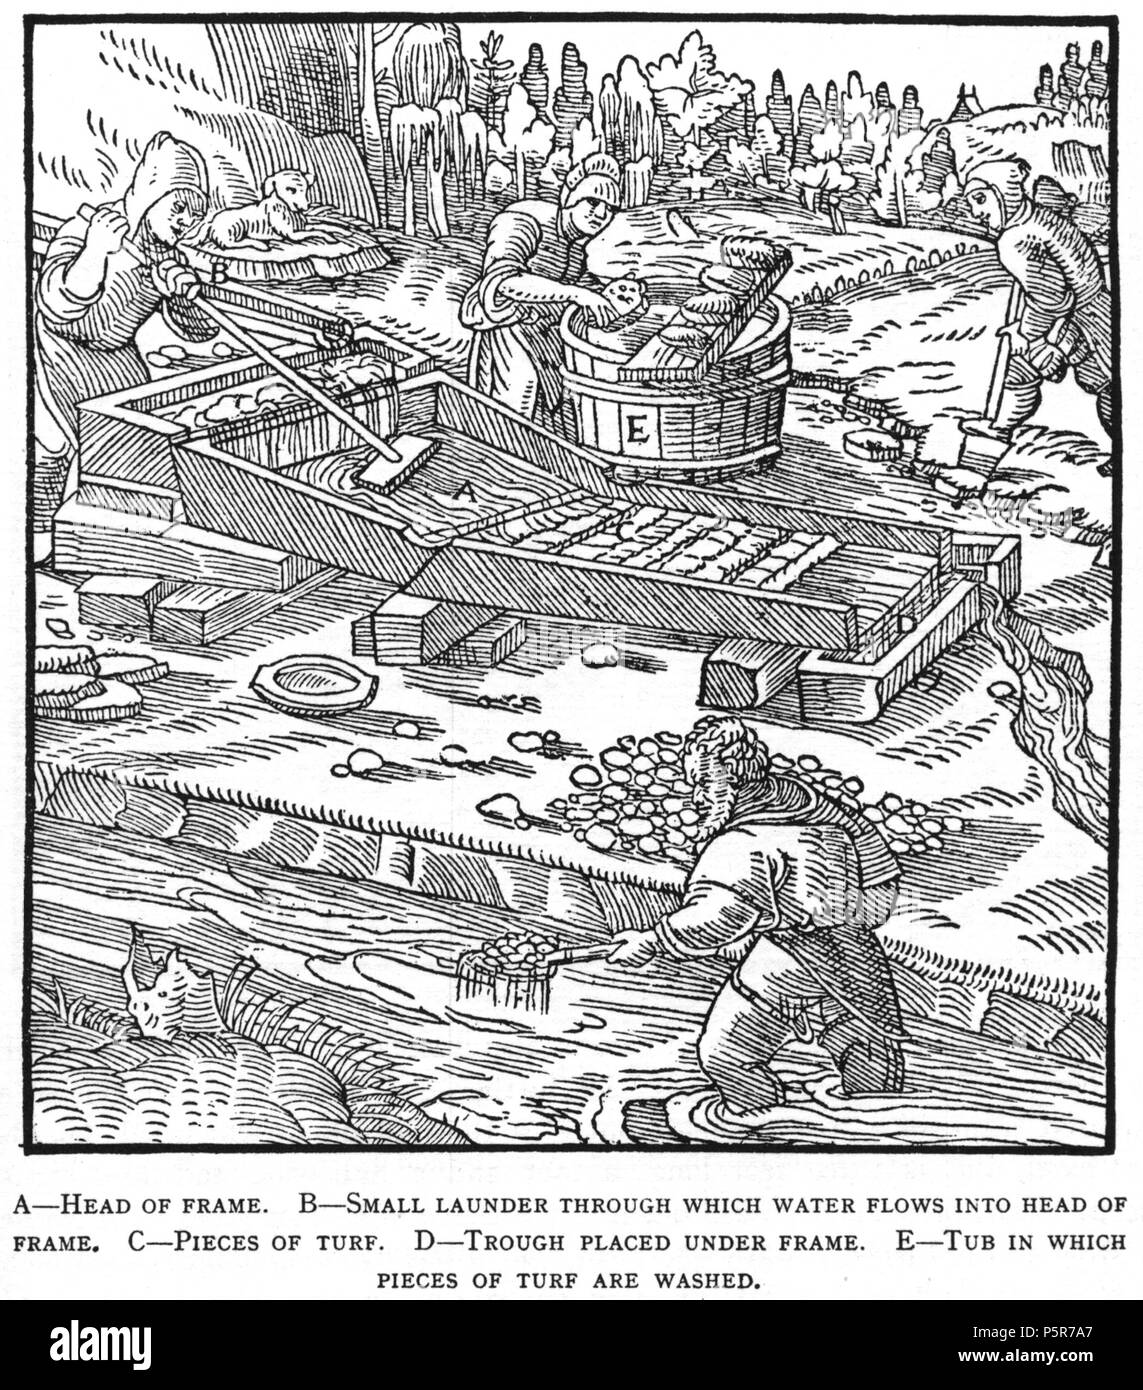 N/A. Woodcut illustration from De re metallica by Georgius Agricola. This is a 300dpi scan from the 1950 Dover edition of the 1913 Hoover translation of the 1556 reference. The Dover edition has slightly smaller size prints than the Hoover (which is a rare book). The woodcuts were recreated for the 1913 printing. Filenames (except for the title page) indicate the chapter (2, 3, 5, etc.) followed by the sequential number of the illustration. 2 May 2005, 07:13:24. TCO (talk) 223 Book8-49 Stock Photo